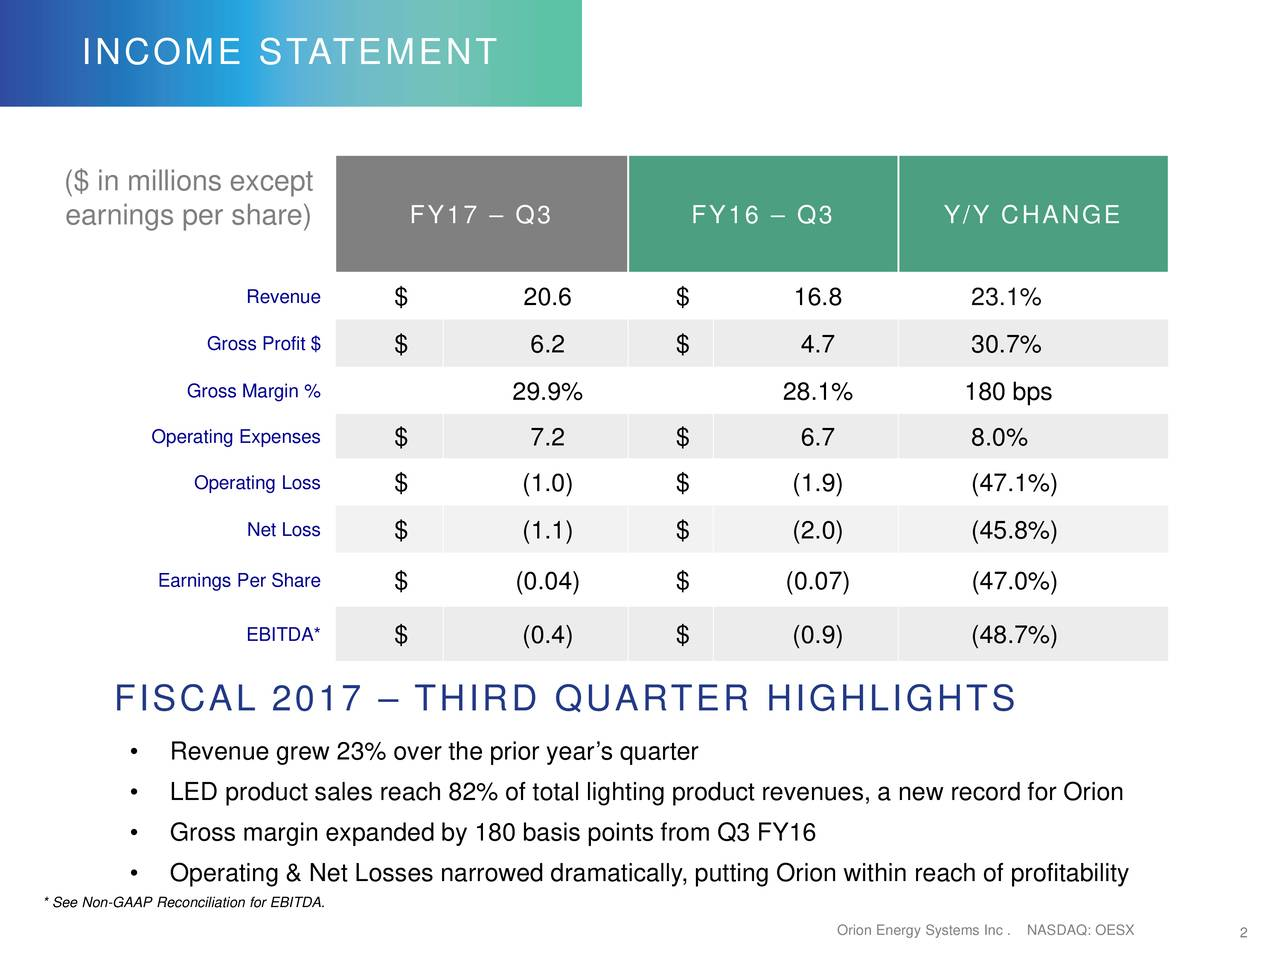 ($ in millions except earnings per share) FY17  Q3 FY16  Q3 Y/Y CHANGE Revenue $ 20.6 $ 16.8 23.1% Gross Profit $ $ 6.2 $ 4.7 30.7% Gross Margin % 29.9% 28.1% 180 bps Operating Expenses $ 7.2 $ 6.7 8.0% Operating Loss $ (1.0) $ (1.9) (47.1%) Net Loss $ (1.1) $ (2.0) (45.8%) Earnings Per Share $ (0.04) $ (0.07) (47.0%) EBITDA* $ (0.4) $ (0.9) (48.7%) FISCAL 2017  THIRD QUARTER HIGHLIGHTS Revenue grew 23% over the prior years quarter LED product sales reach 82% of total lighting product revenues, a new record for Orion Gross margin expanded by 180 basis points from Q3 FY16 Operating & Net Losses narrowed dramatically, putting Orion within reach of profitability * See Non-GAAP Reconciliation for EBITDA. Orion Energy SysNASDAQ: OESX 2